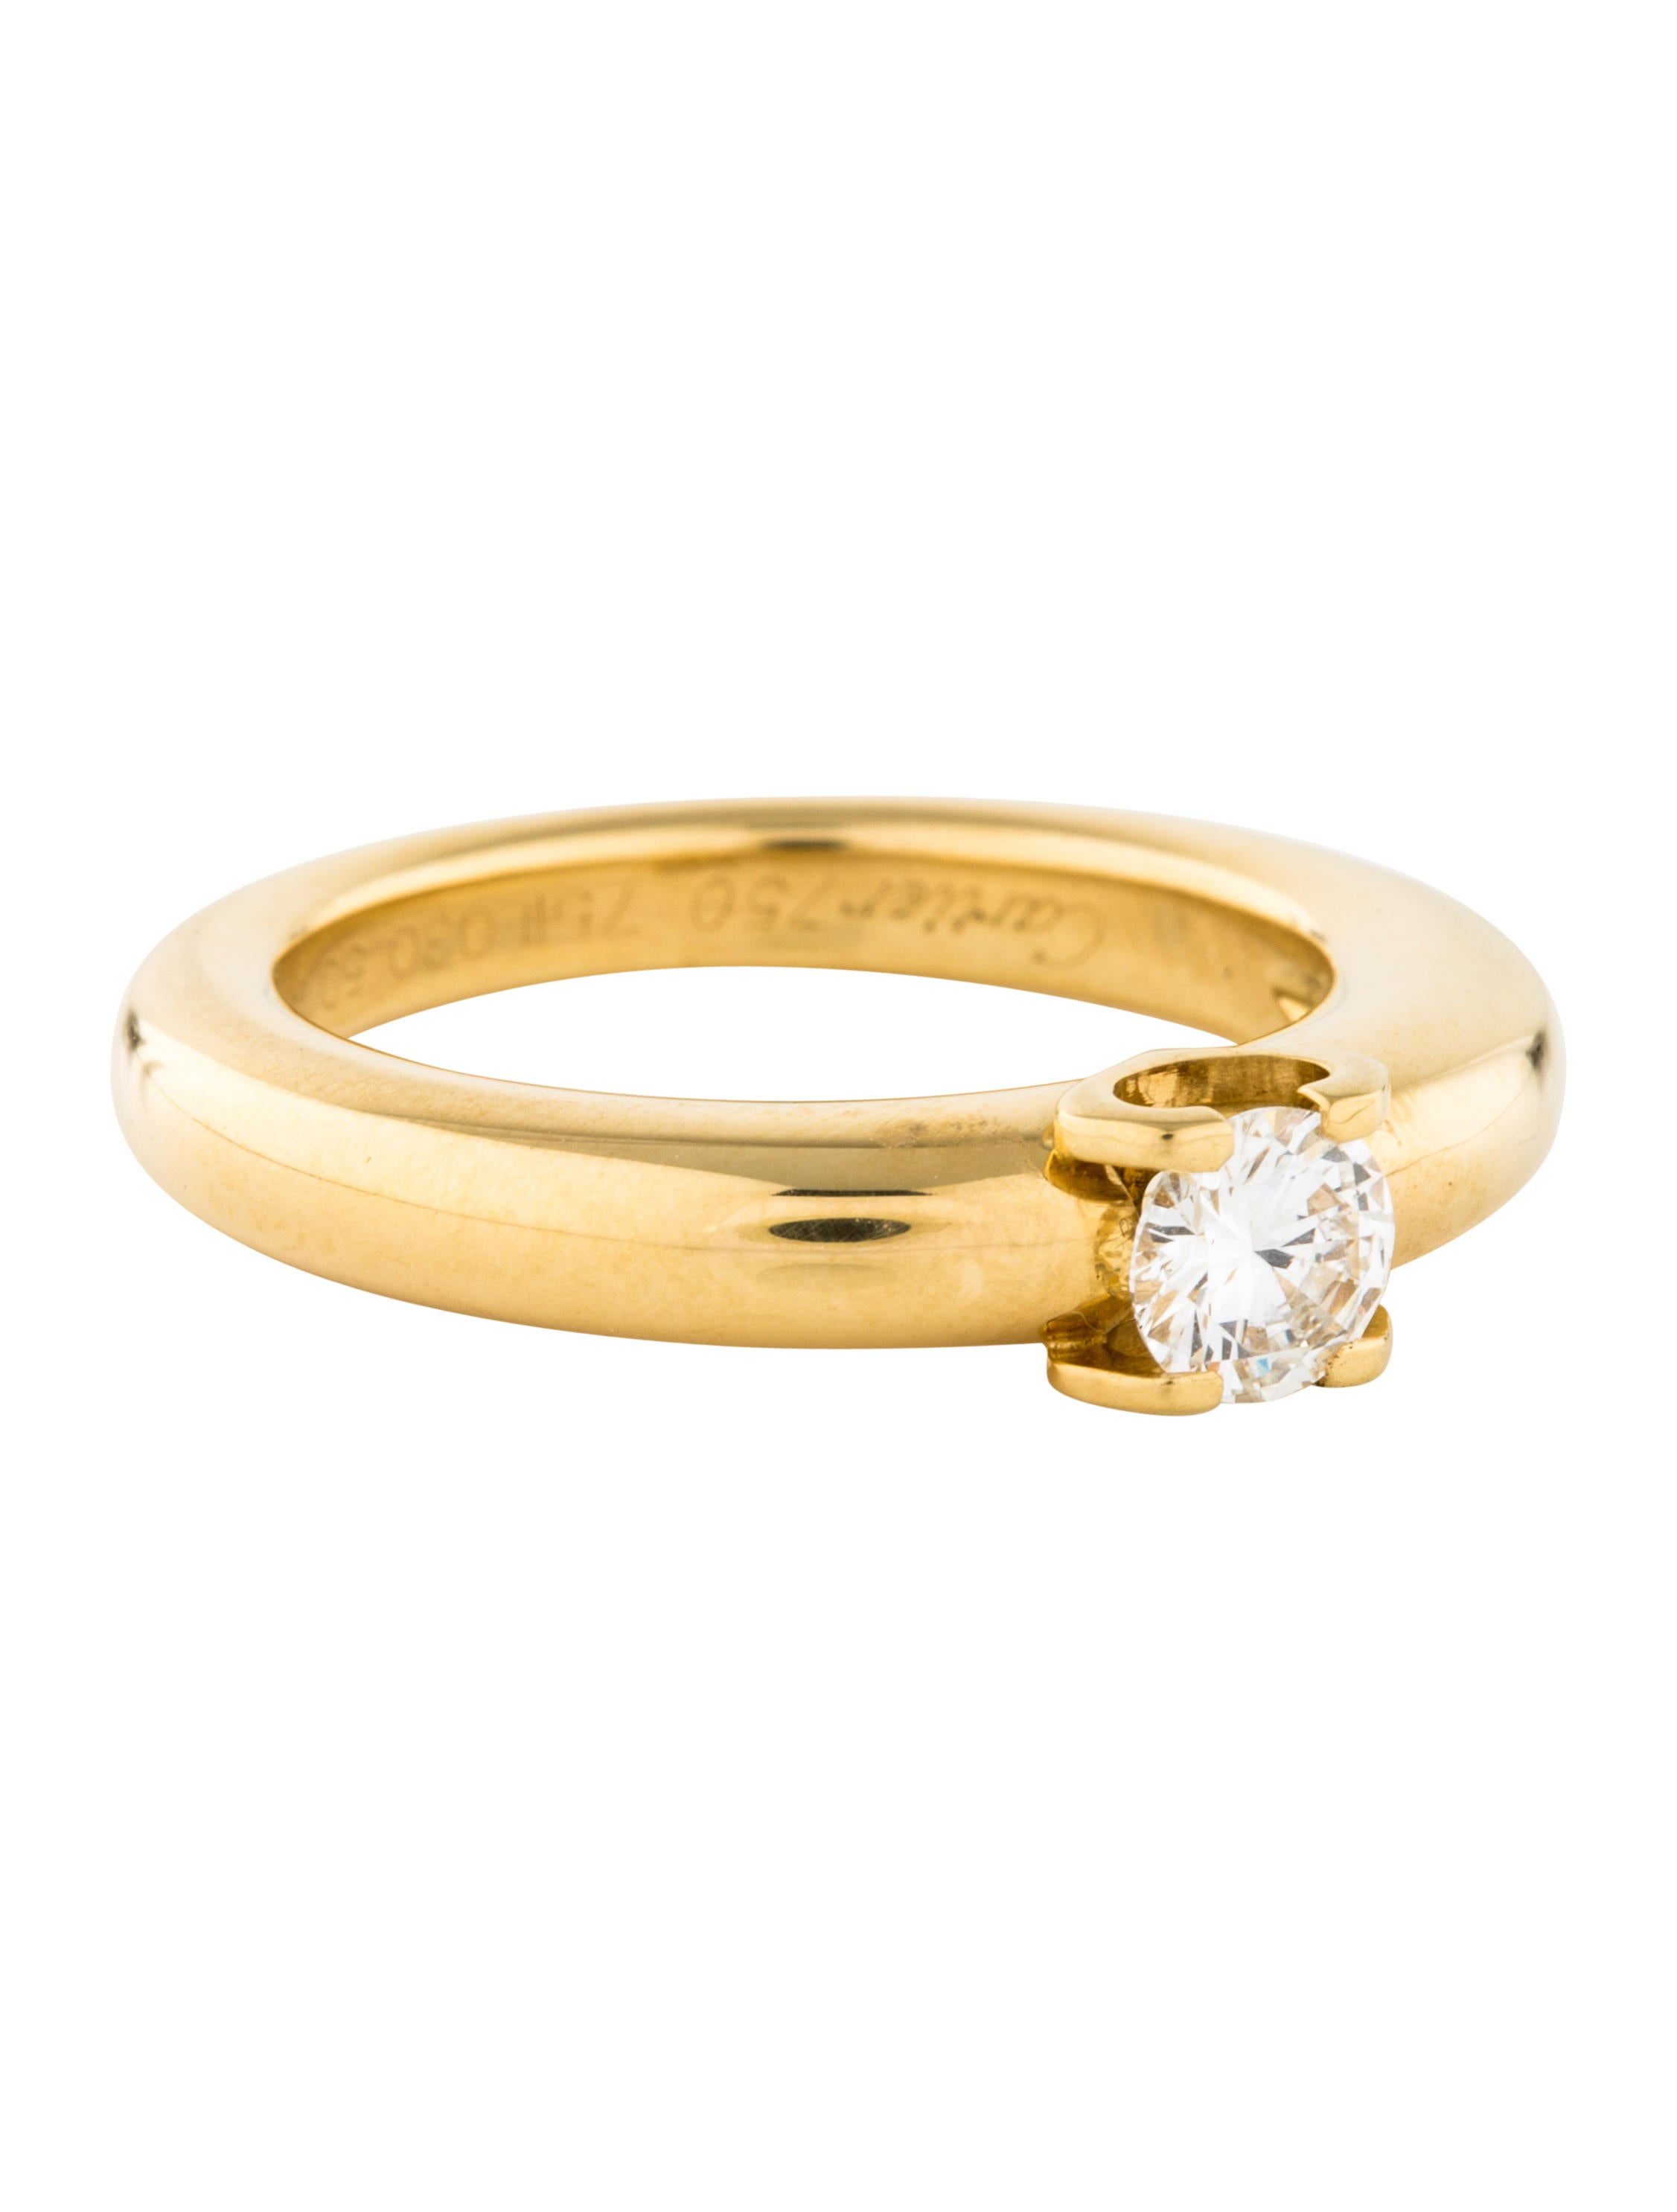 cartier c de cartier diamond engagement ring rings With cartier diamond wedding rings